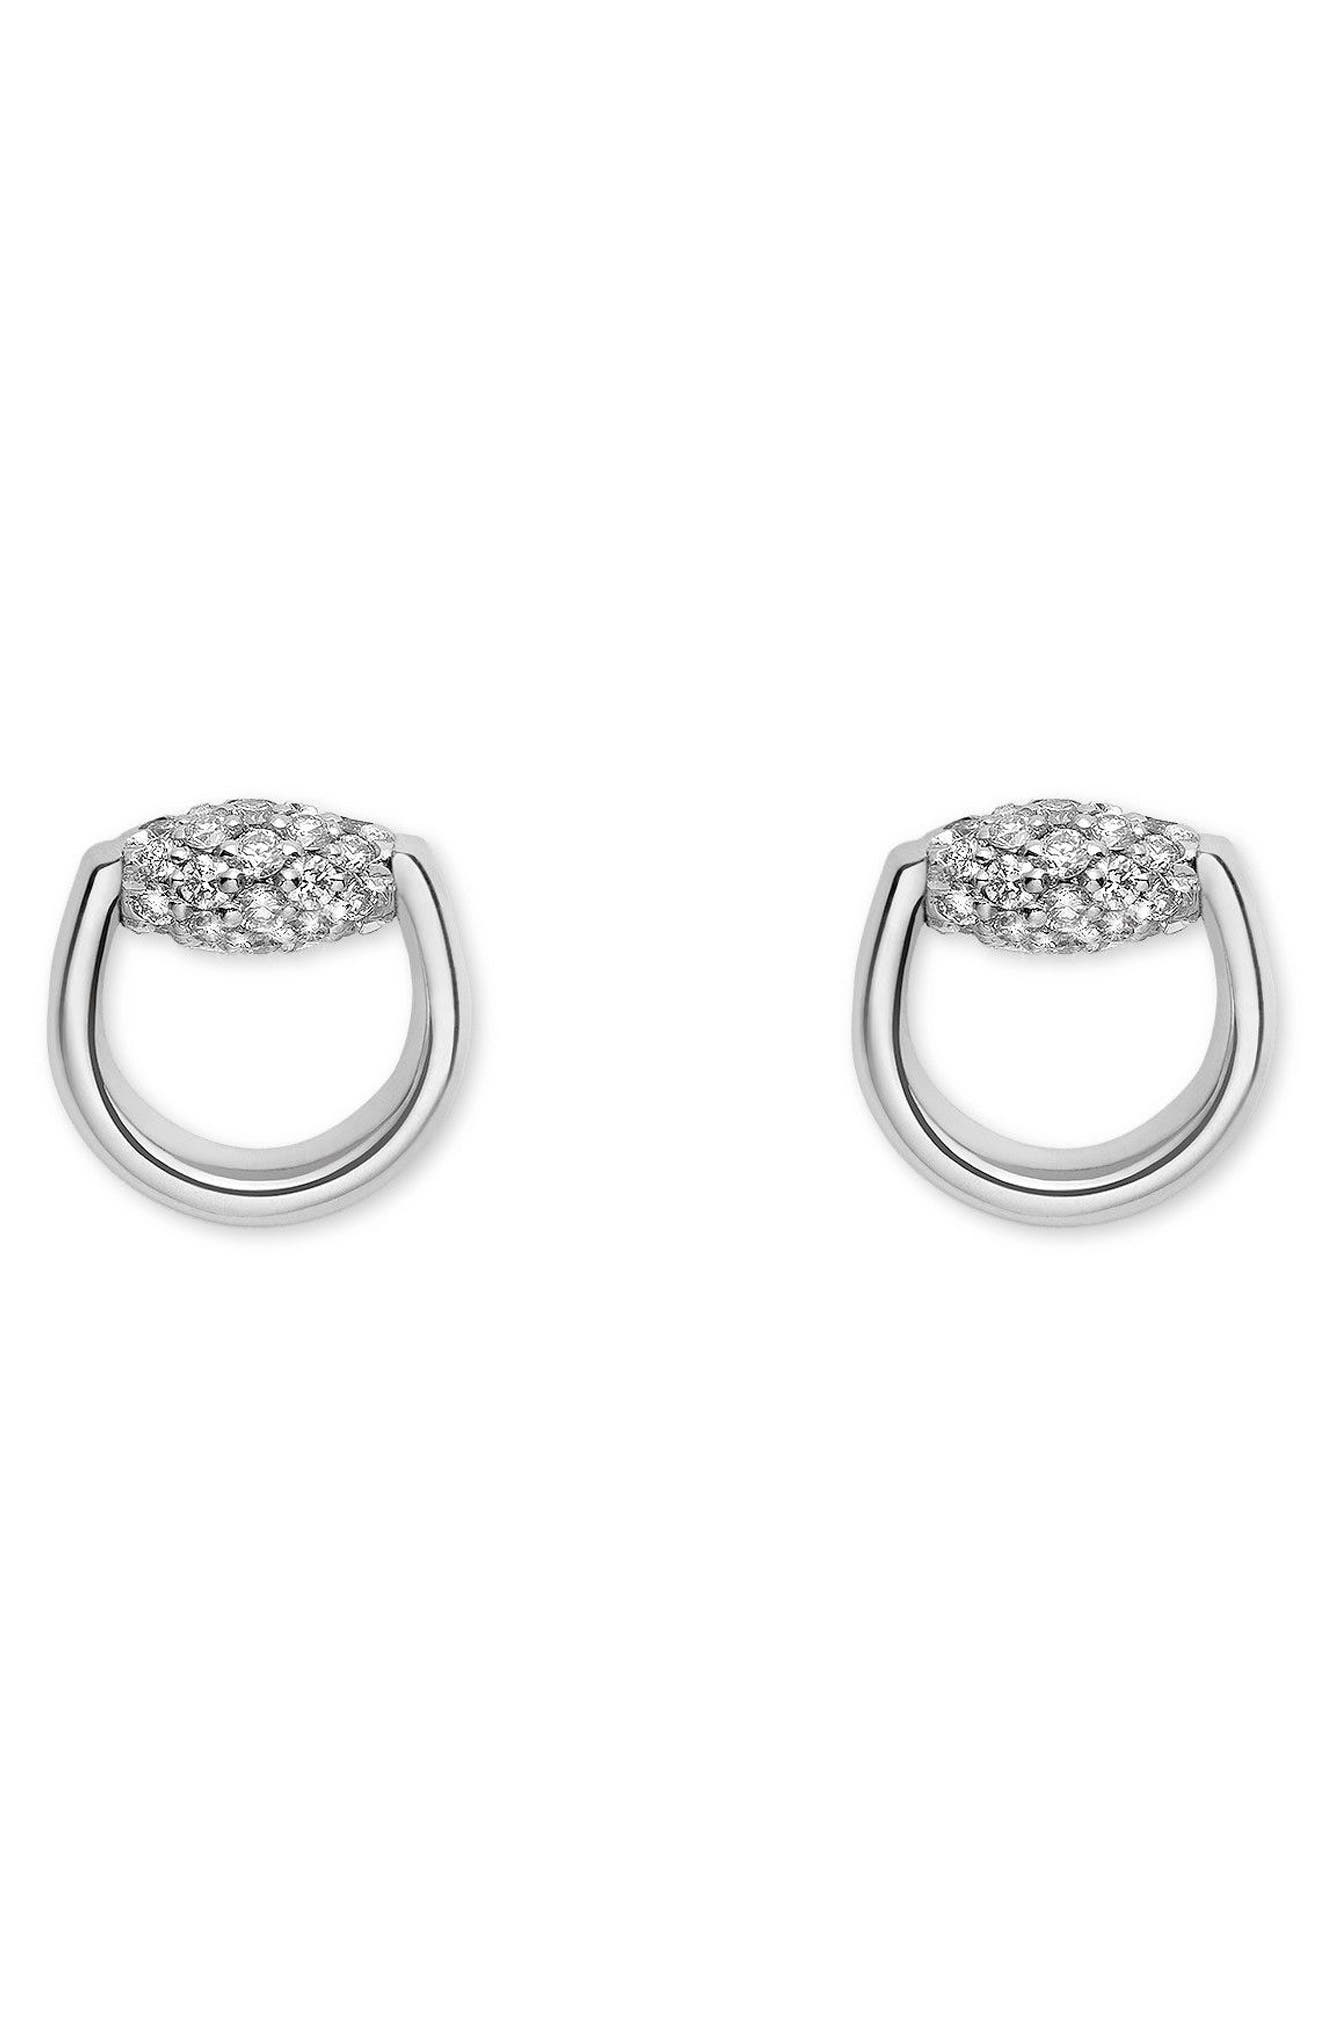 Alternate Image 1 Selected - Gucci Horsebit Diamond Stud Earrings